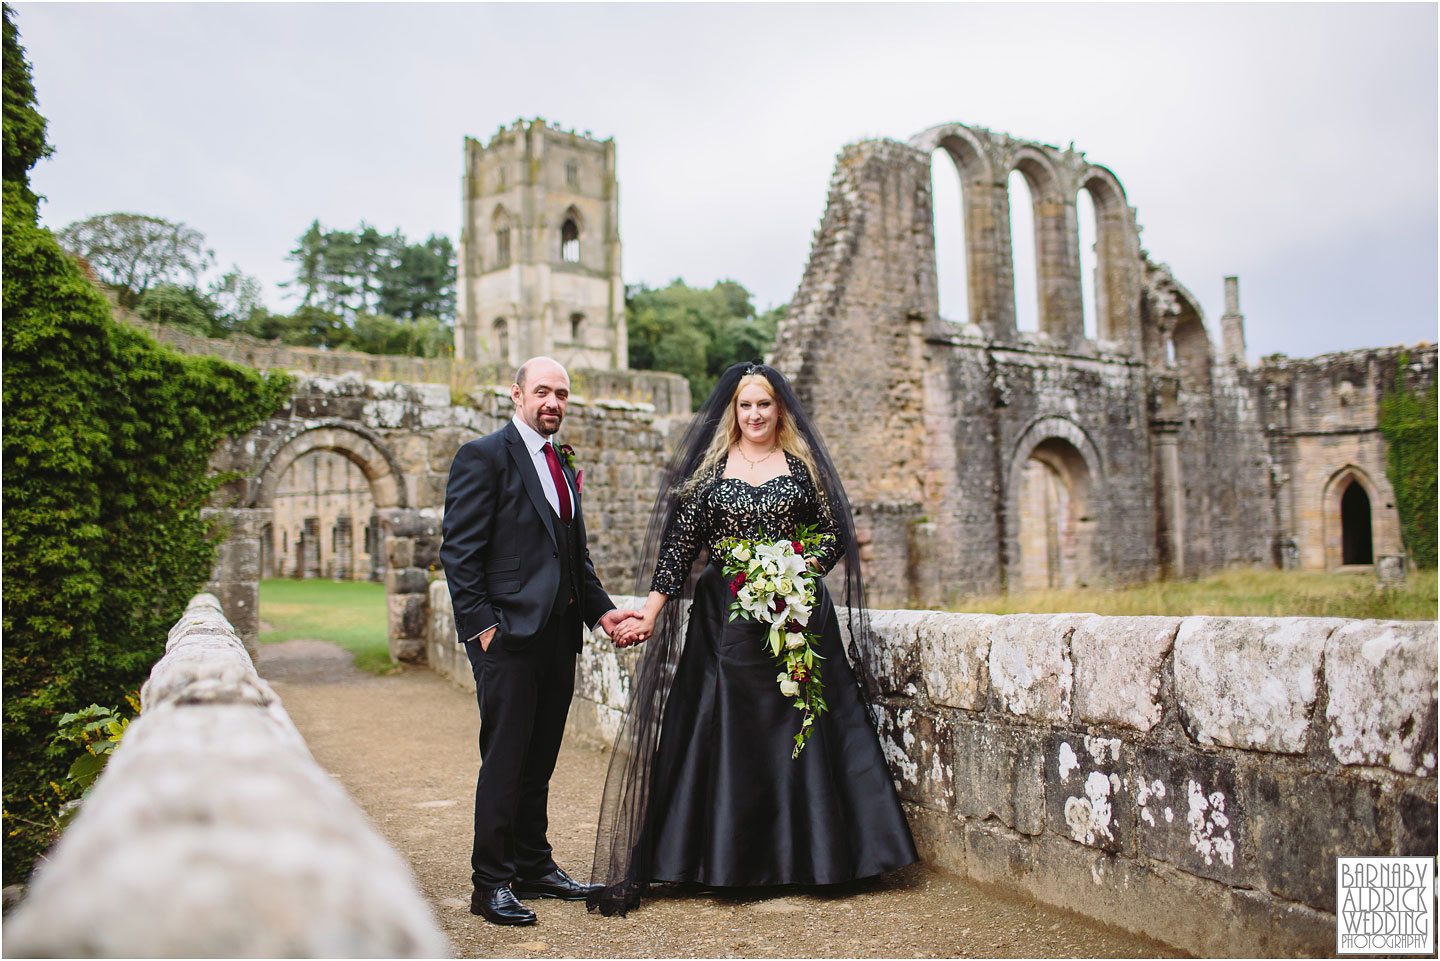 A wedding portrait photograph in the ruins of The National Trust's Fountains Abbey